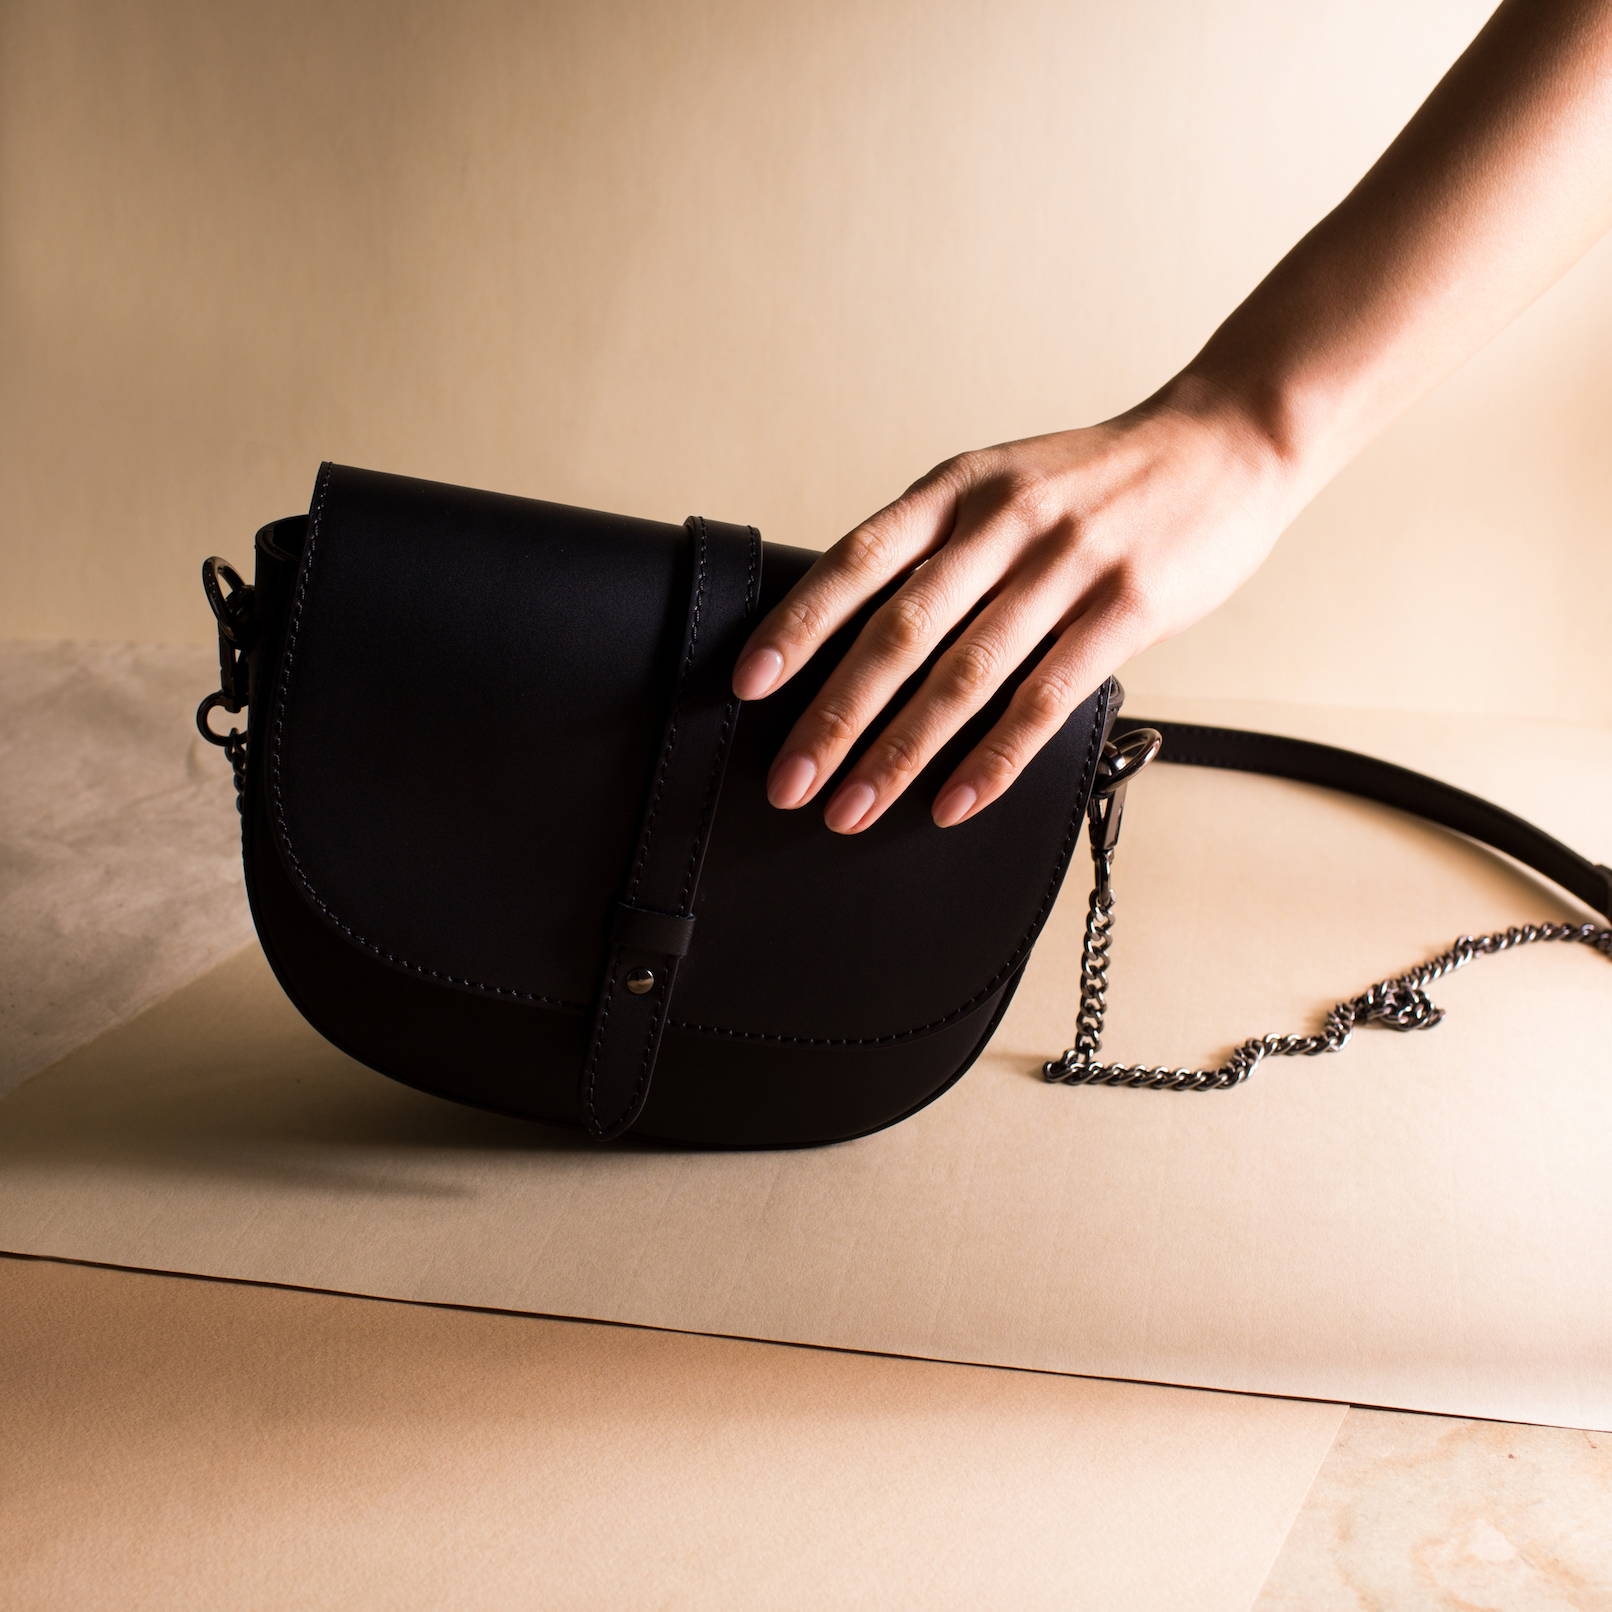 Vestirsi AMBER Leather Handbag handmade in Italy with smooth black quality Italian leather with chain crossbody strap